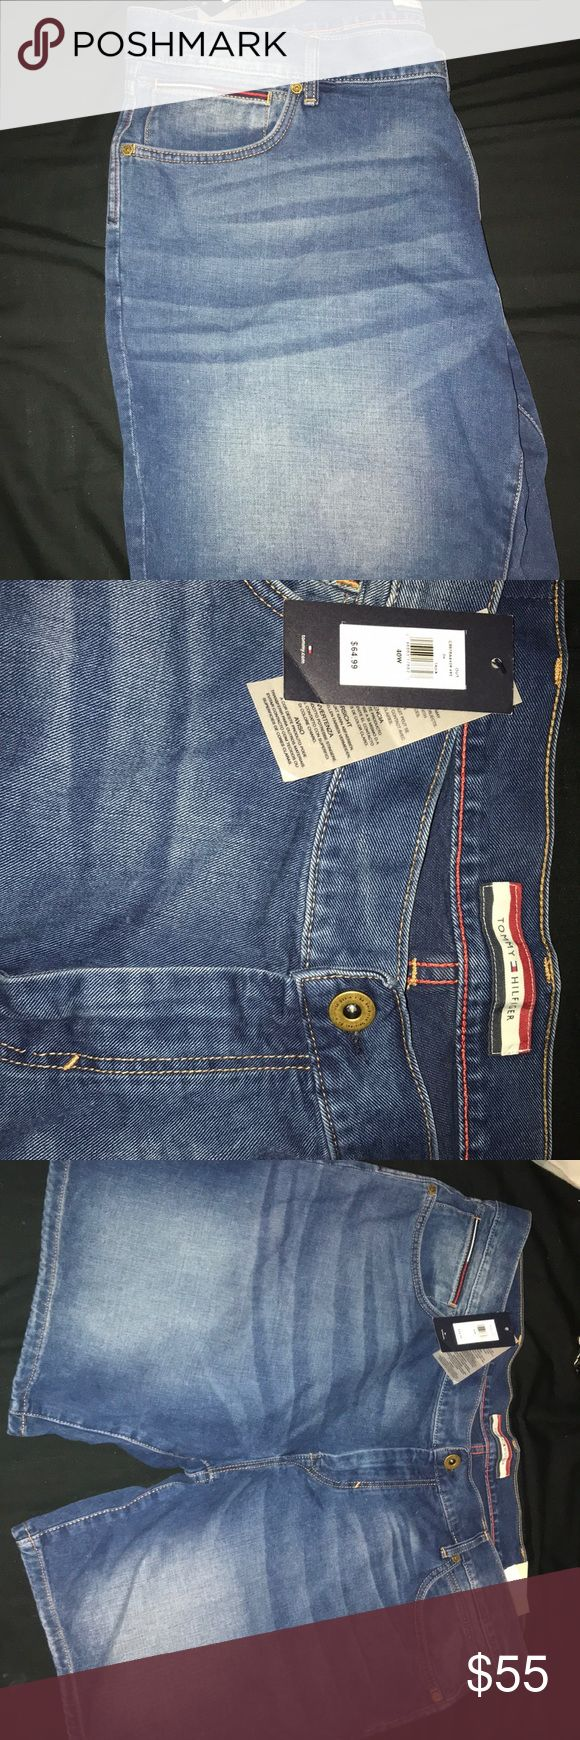 Tommy Hilfiger jean shorts for men Brand new Tommy Hilfiger jean shorts for men! Tommy Hilfiger Shorts Jean Shorts